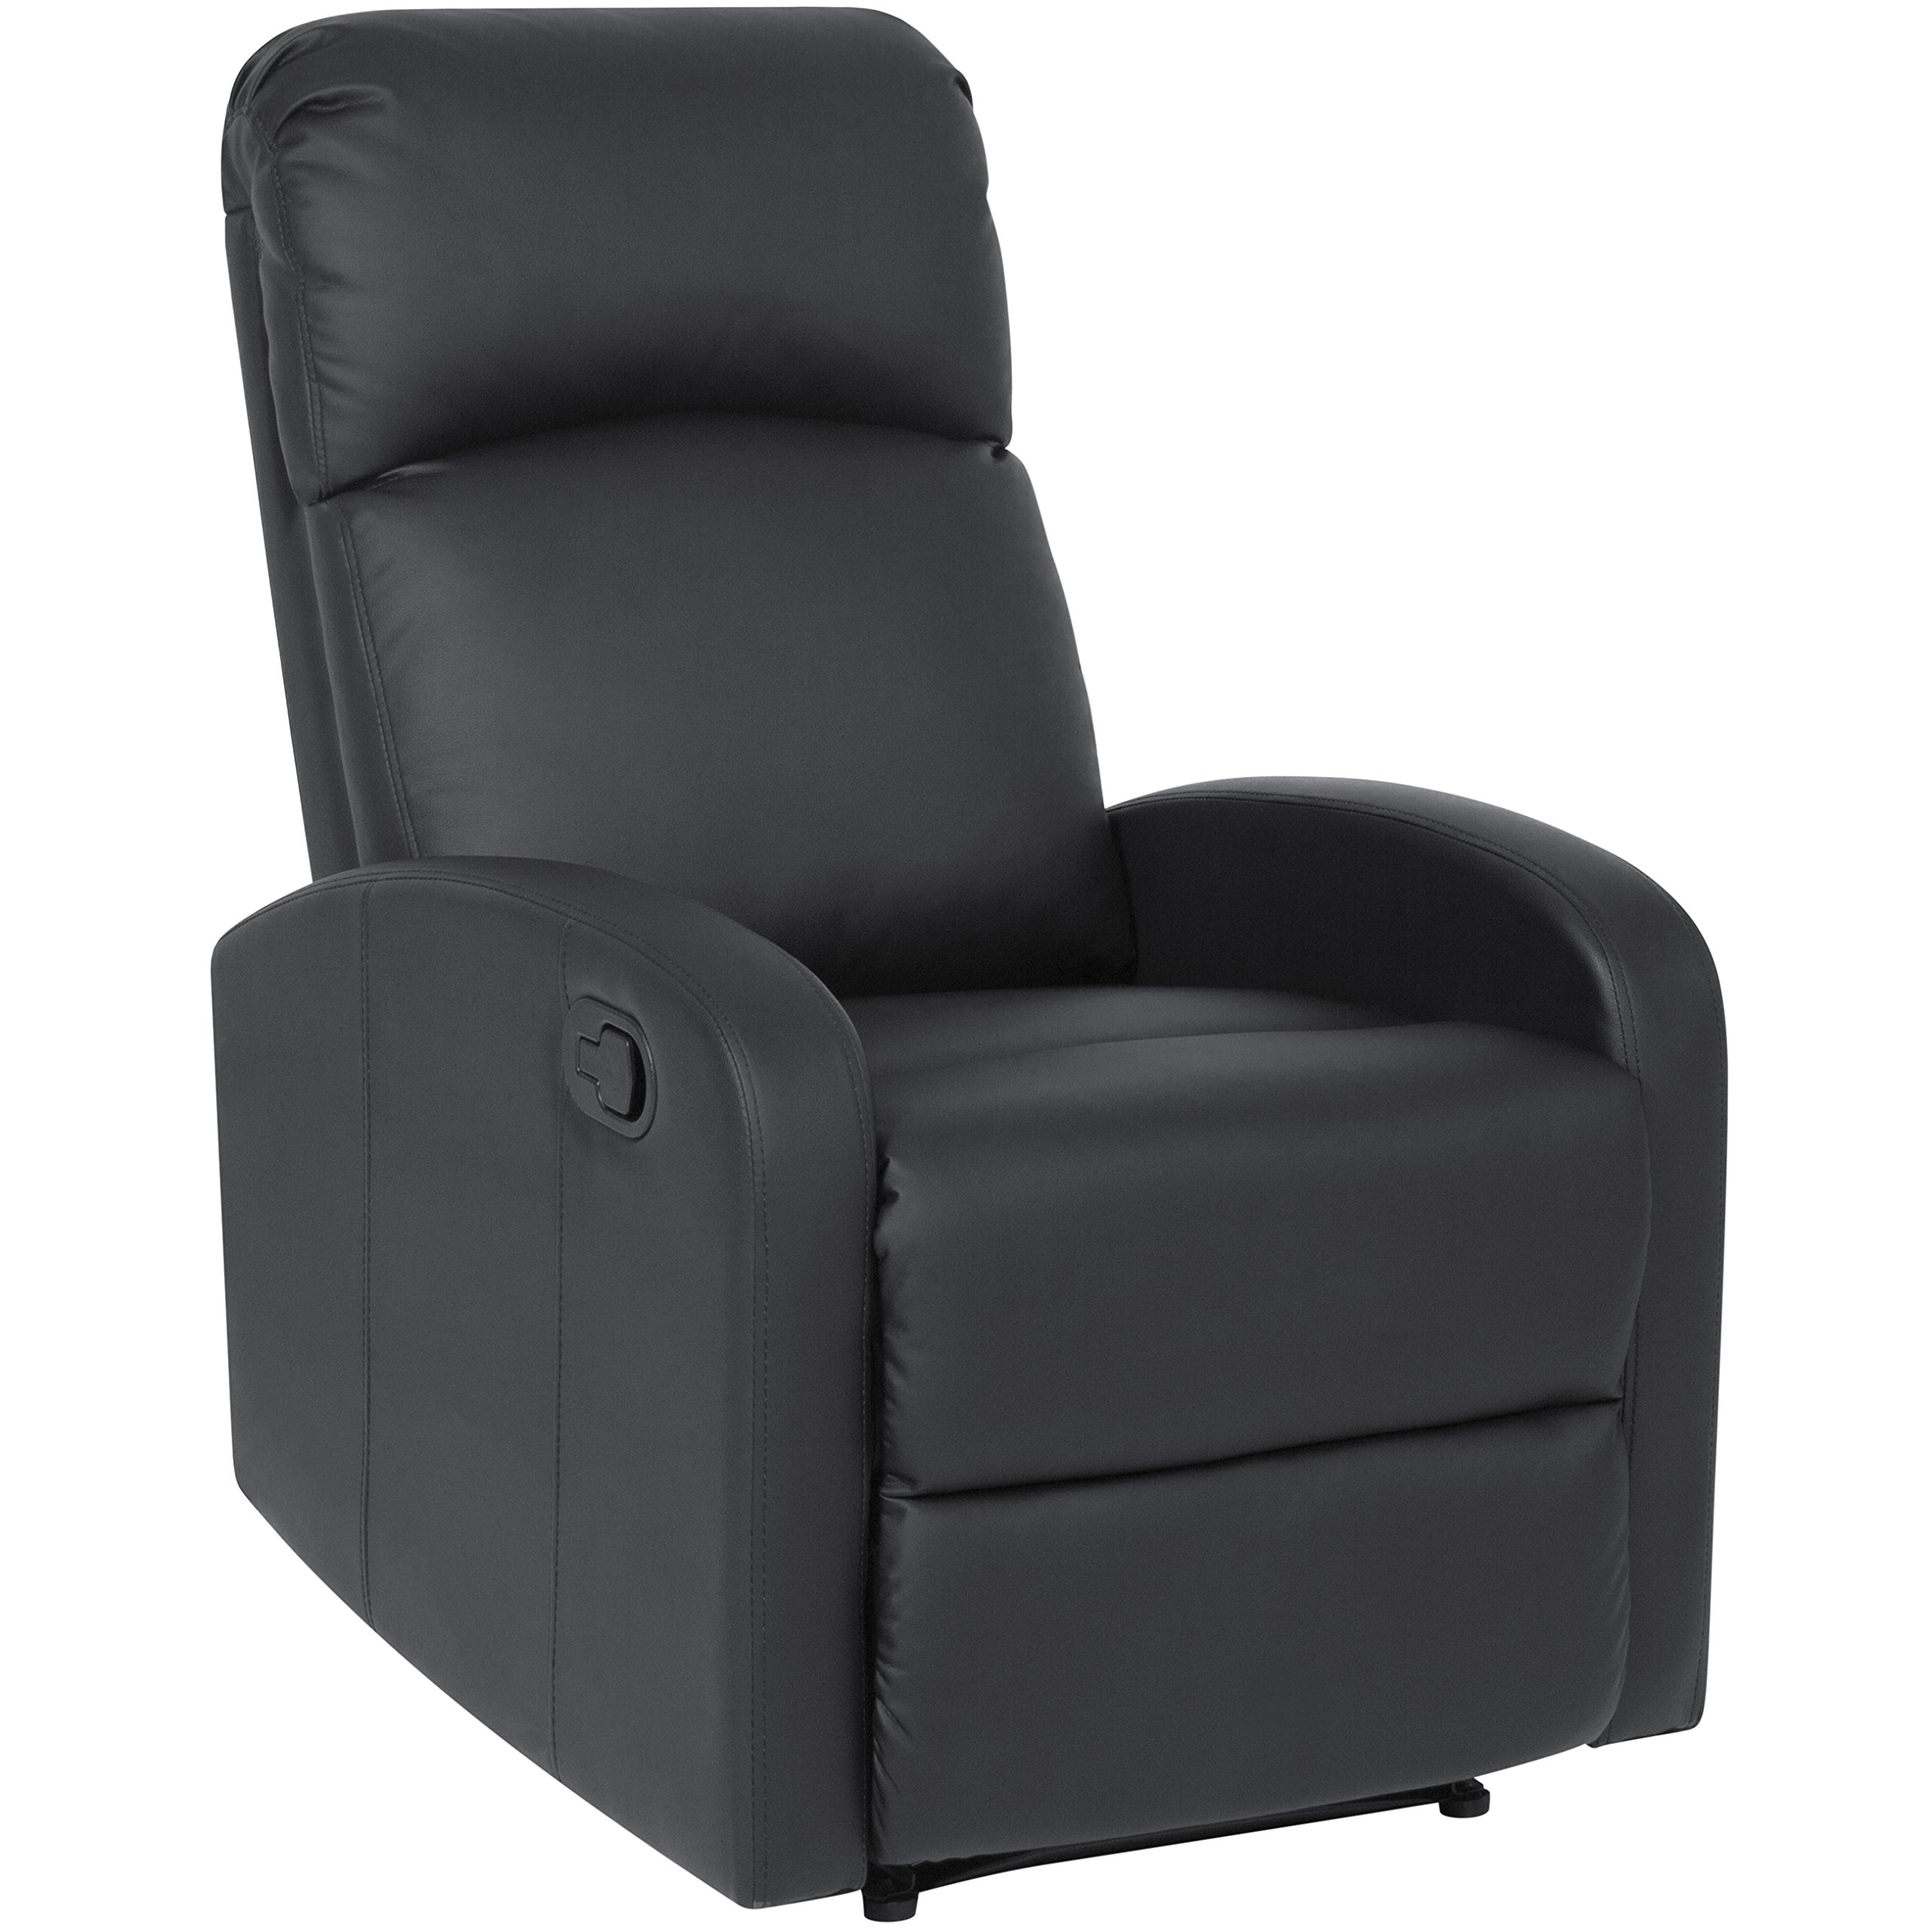 Best Choice Products Furniture Home Theater PU Leather Recliner Chair- Black by Best Choice Products